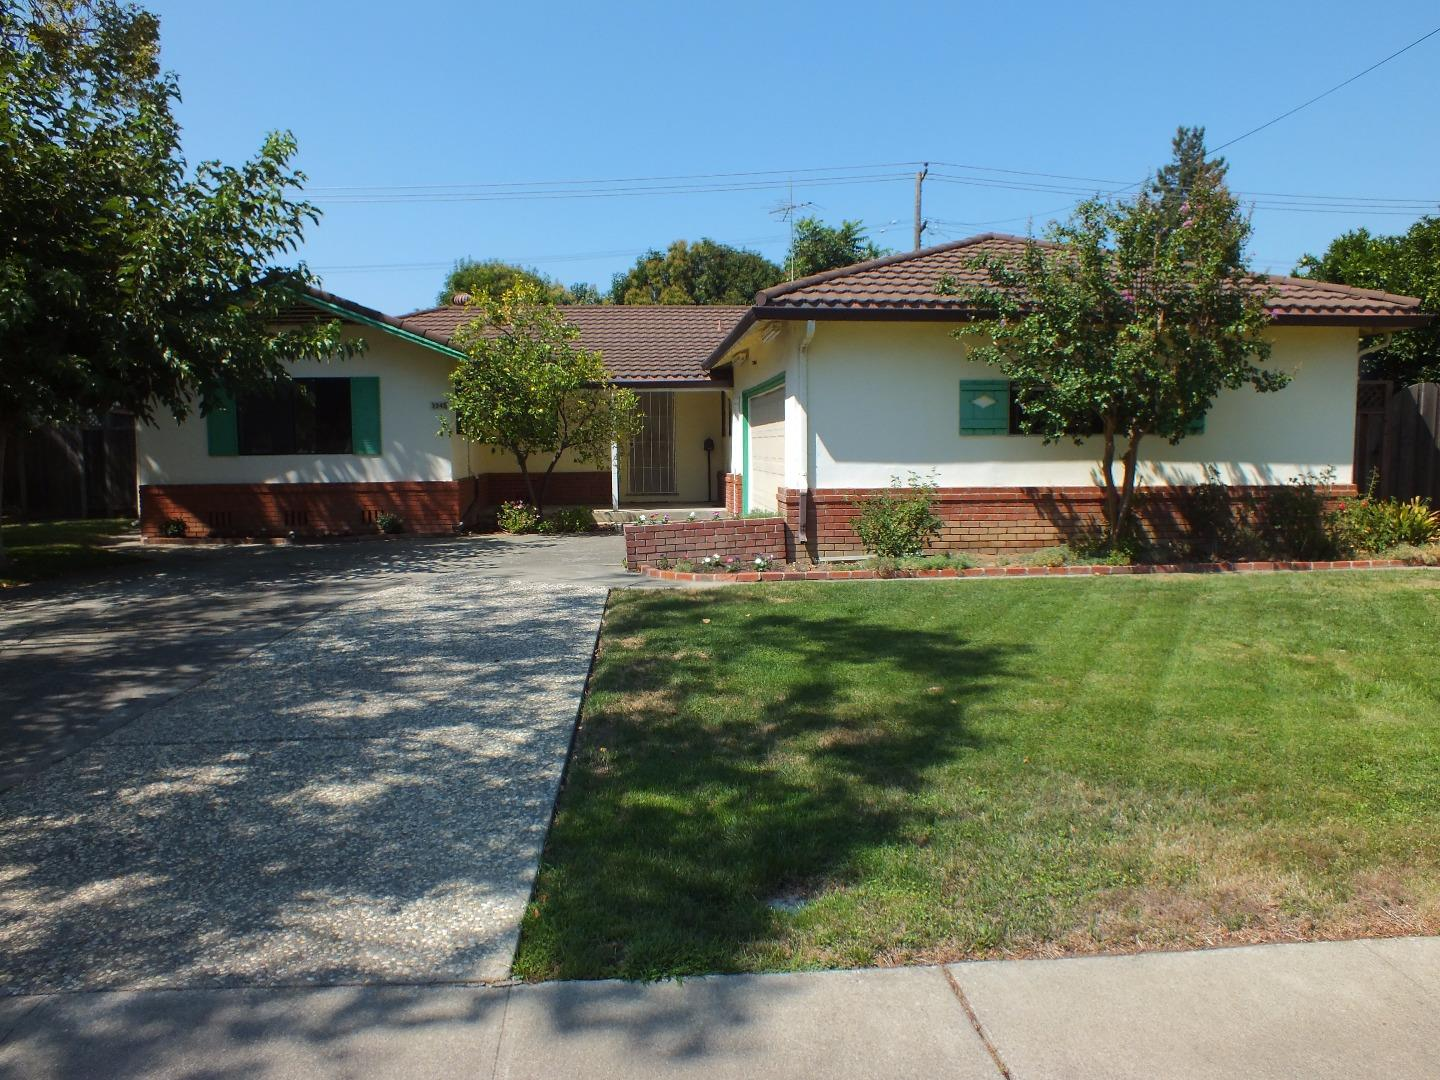 3345 Walton Way, SAN JOSE, CA 95117